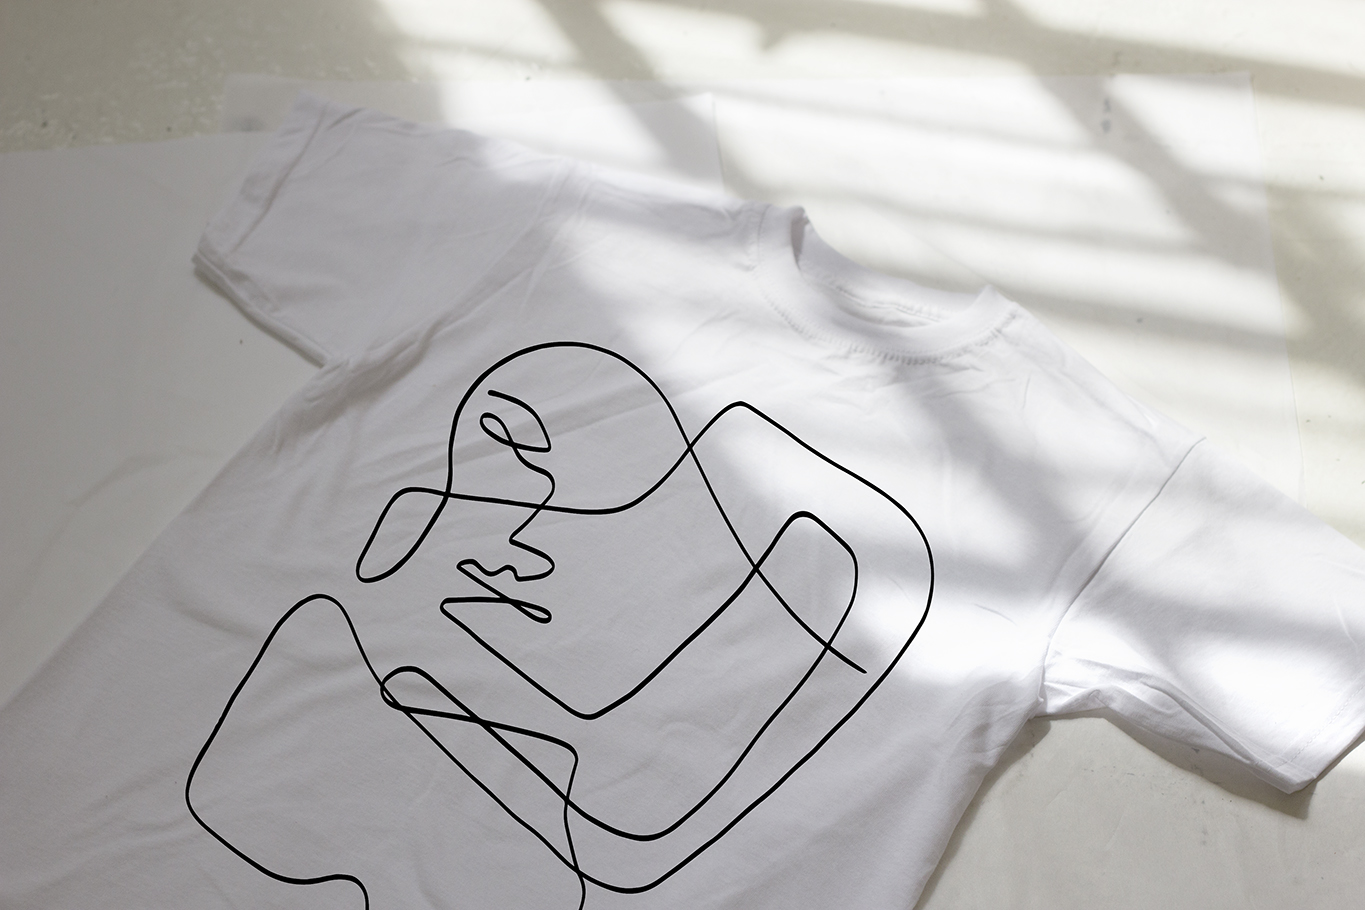 'Liney' limited edition tee